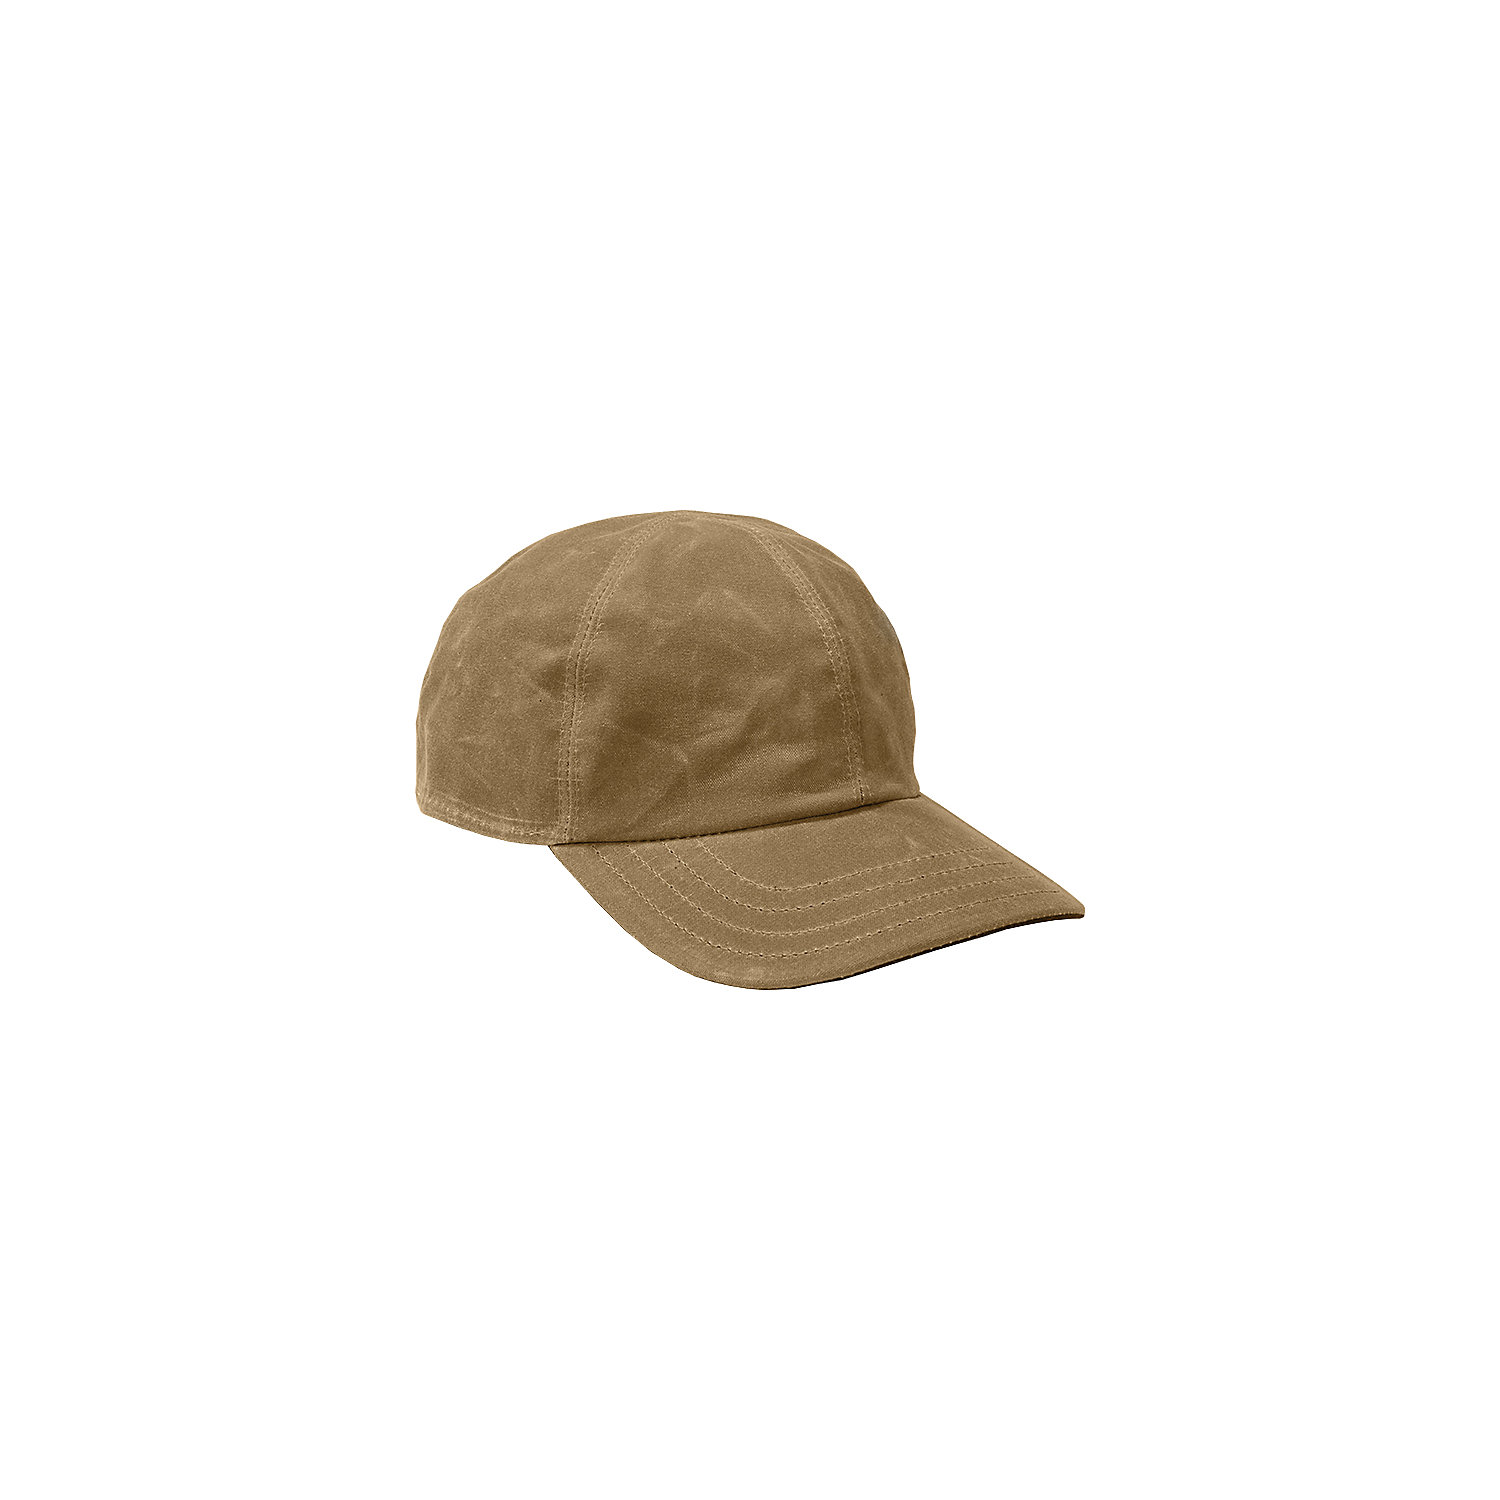 Stormy Kromer Waxed Cotton Curveball Cap - Moosejaw 81bc60f37c1e